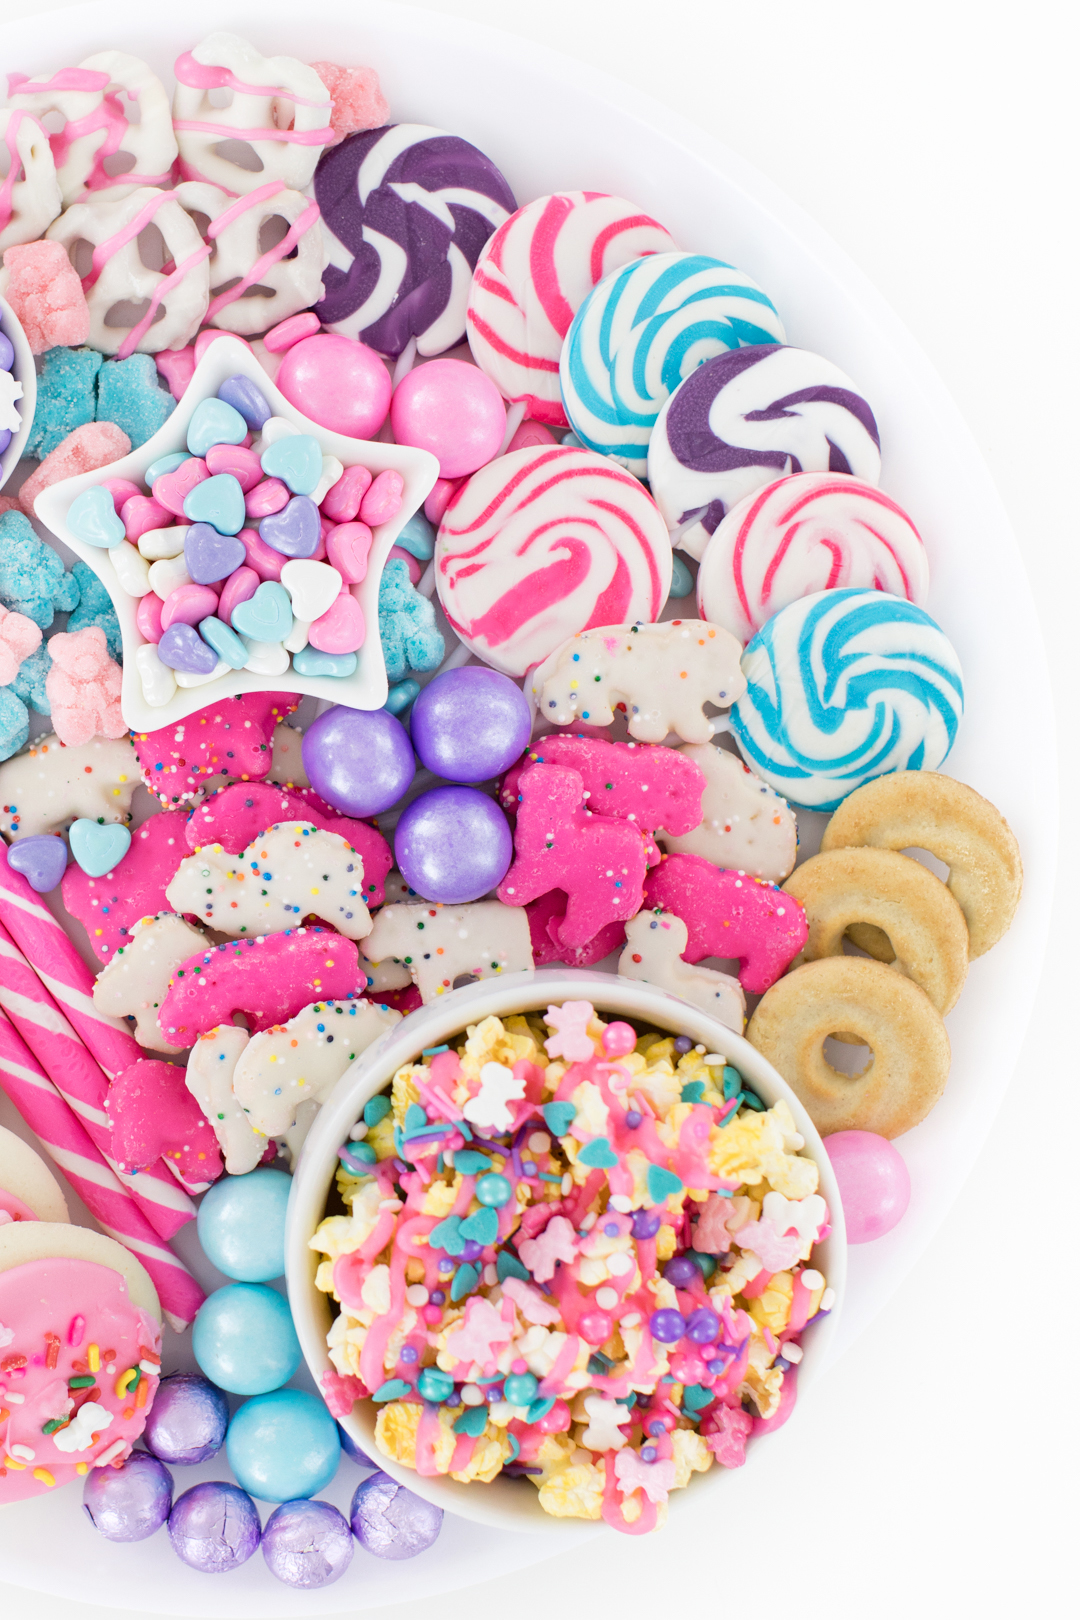 pastel snack board with lollipops and popcorn and cookies.